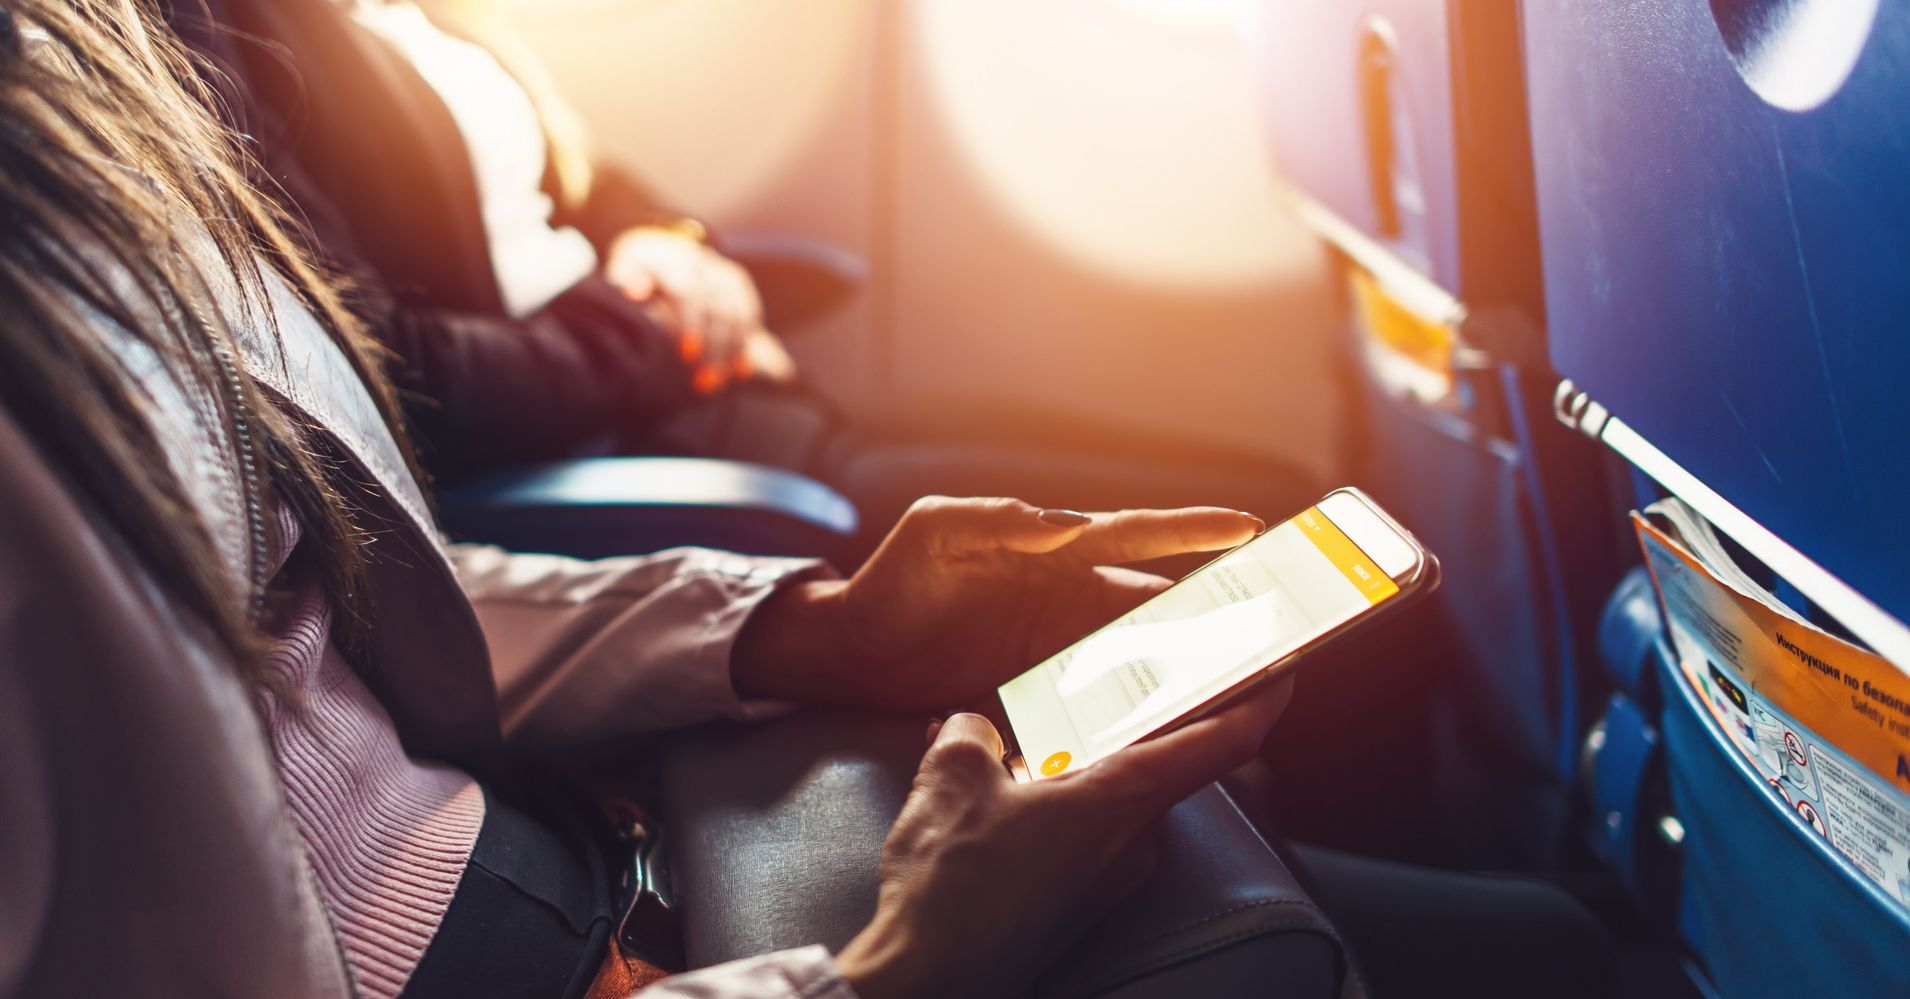 Expert Reveals The Odd Trick That Can Help You Stay Calm During A Turbulent Flight